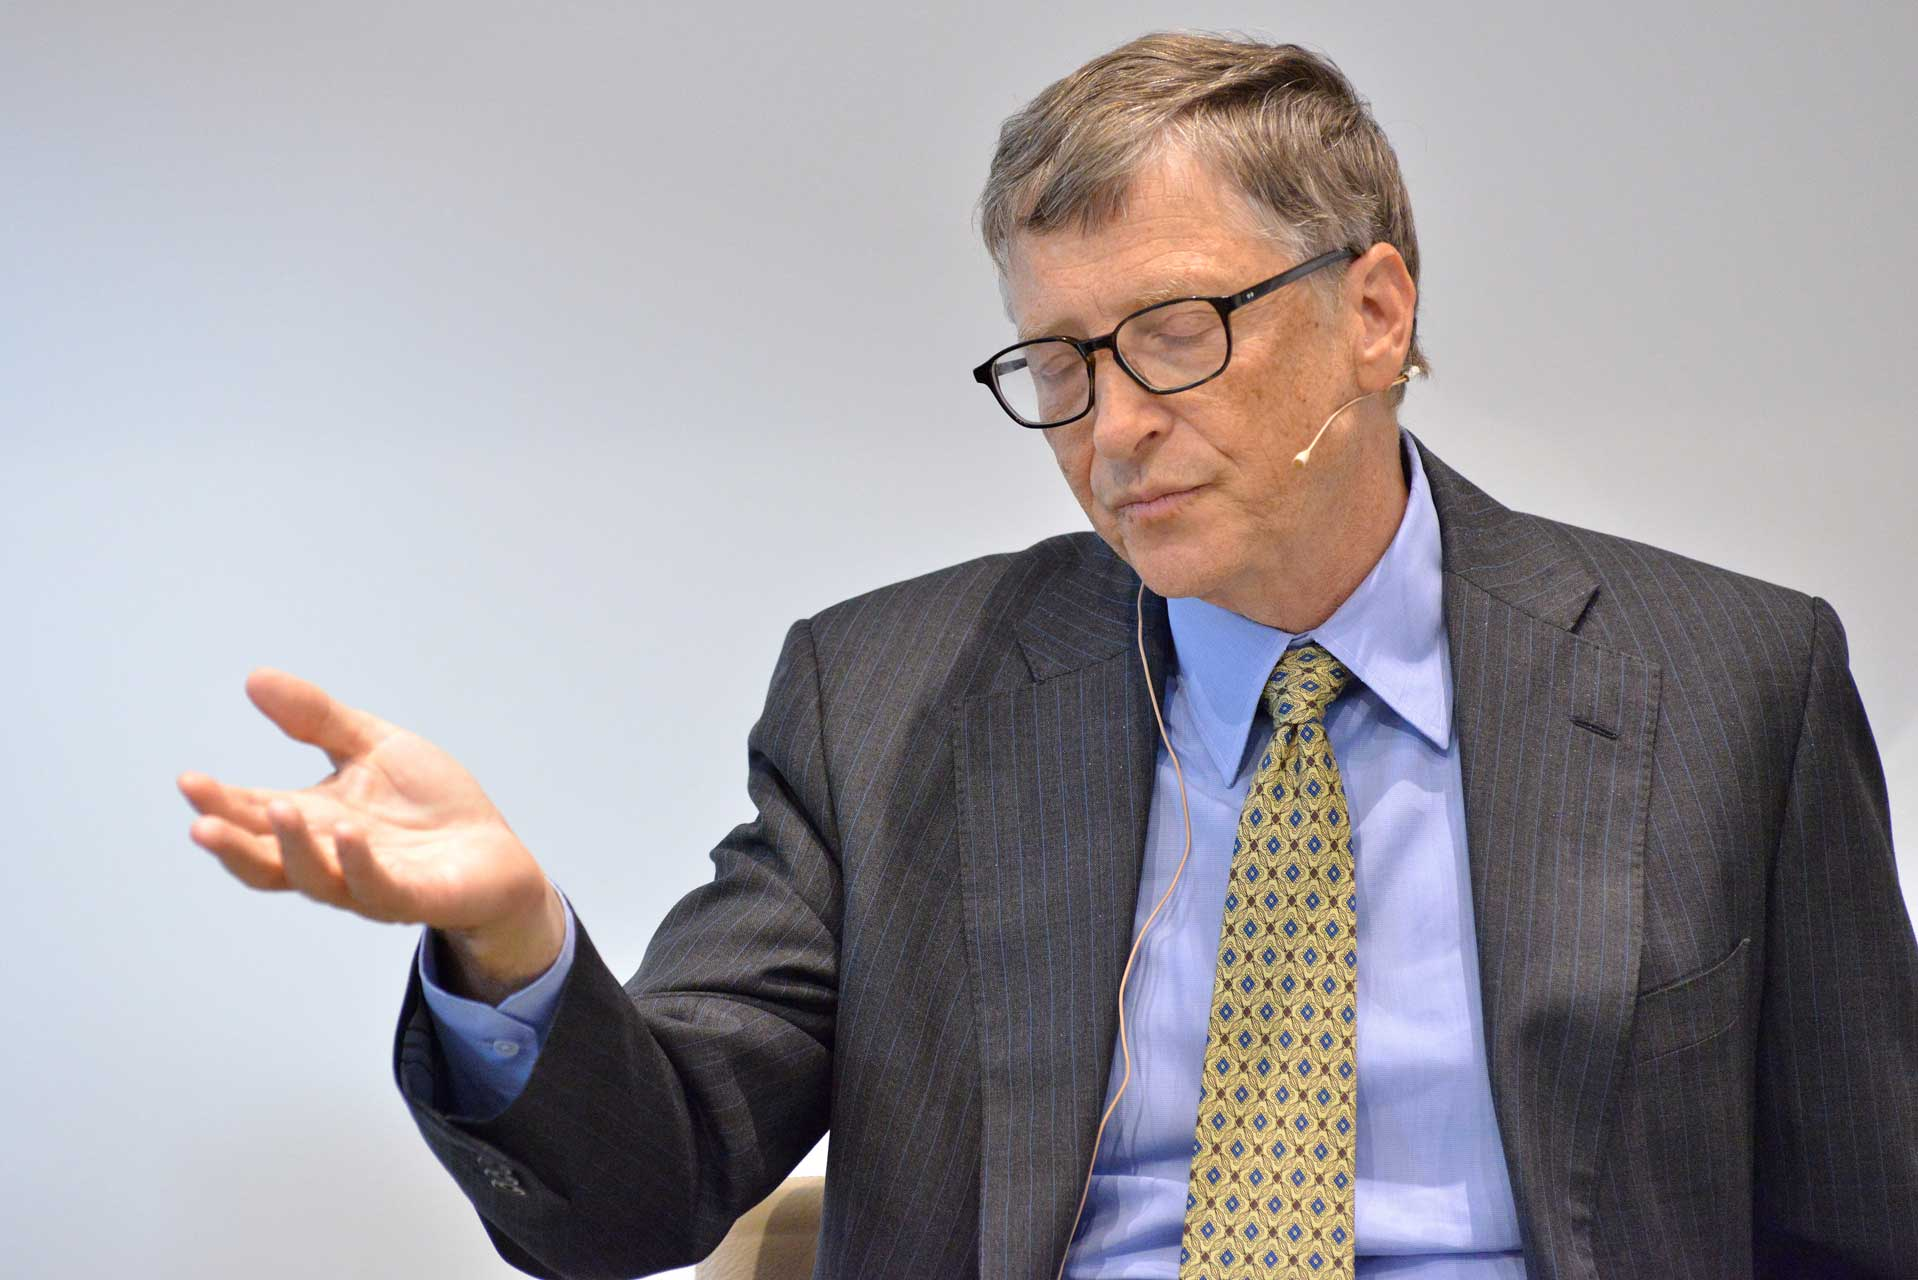 Bill-Gates-Cherno-Jobatey-14112013-Town-Hall-Meeting-Berlin-Henrik-Andree-0640